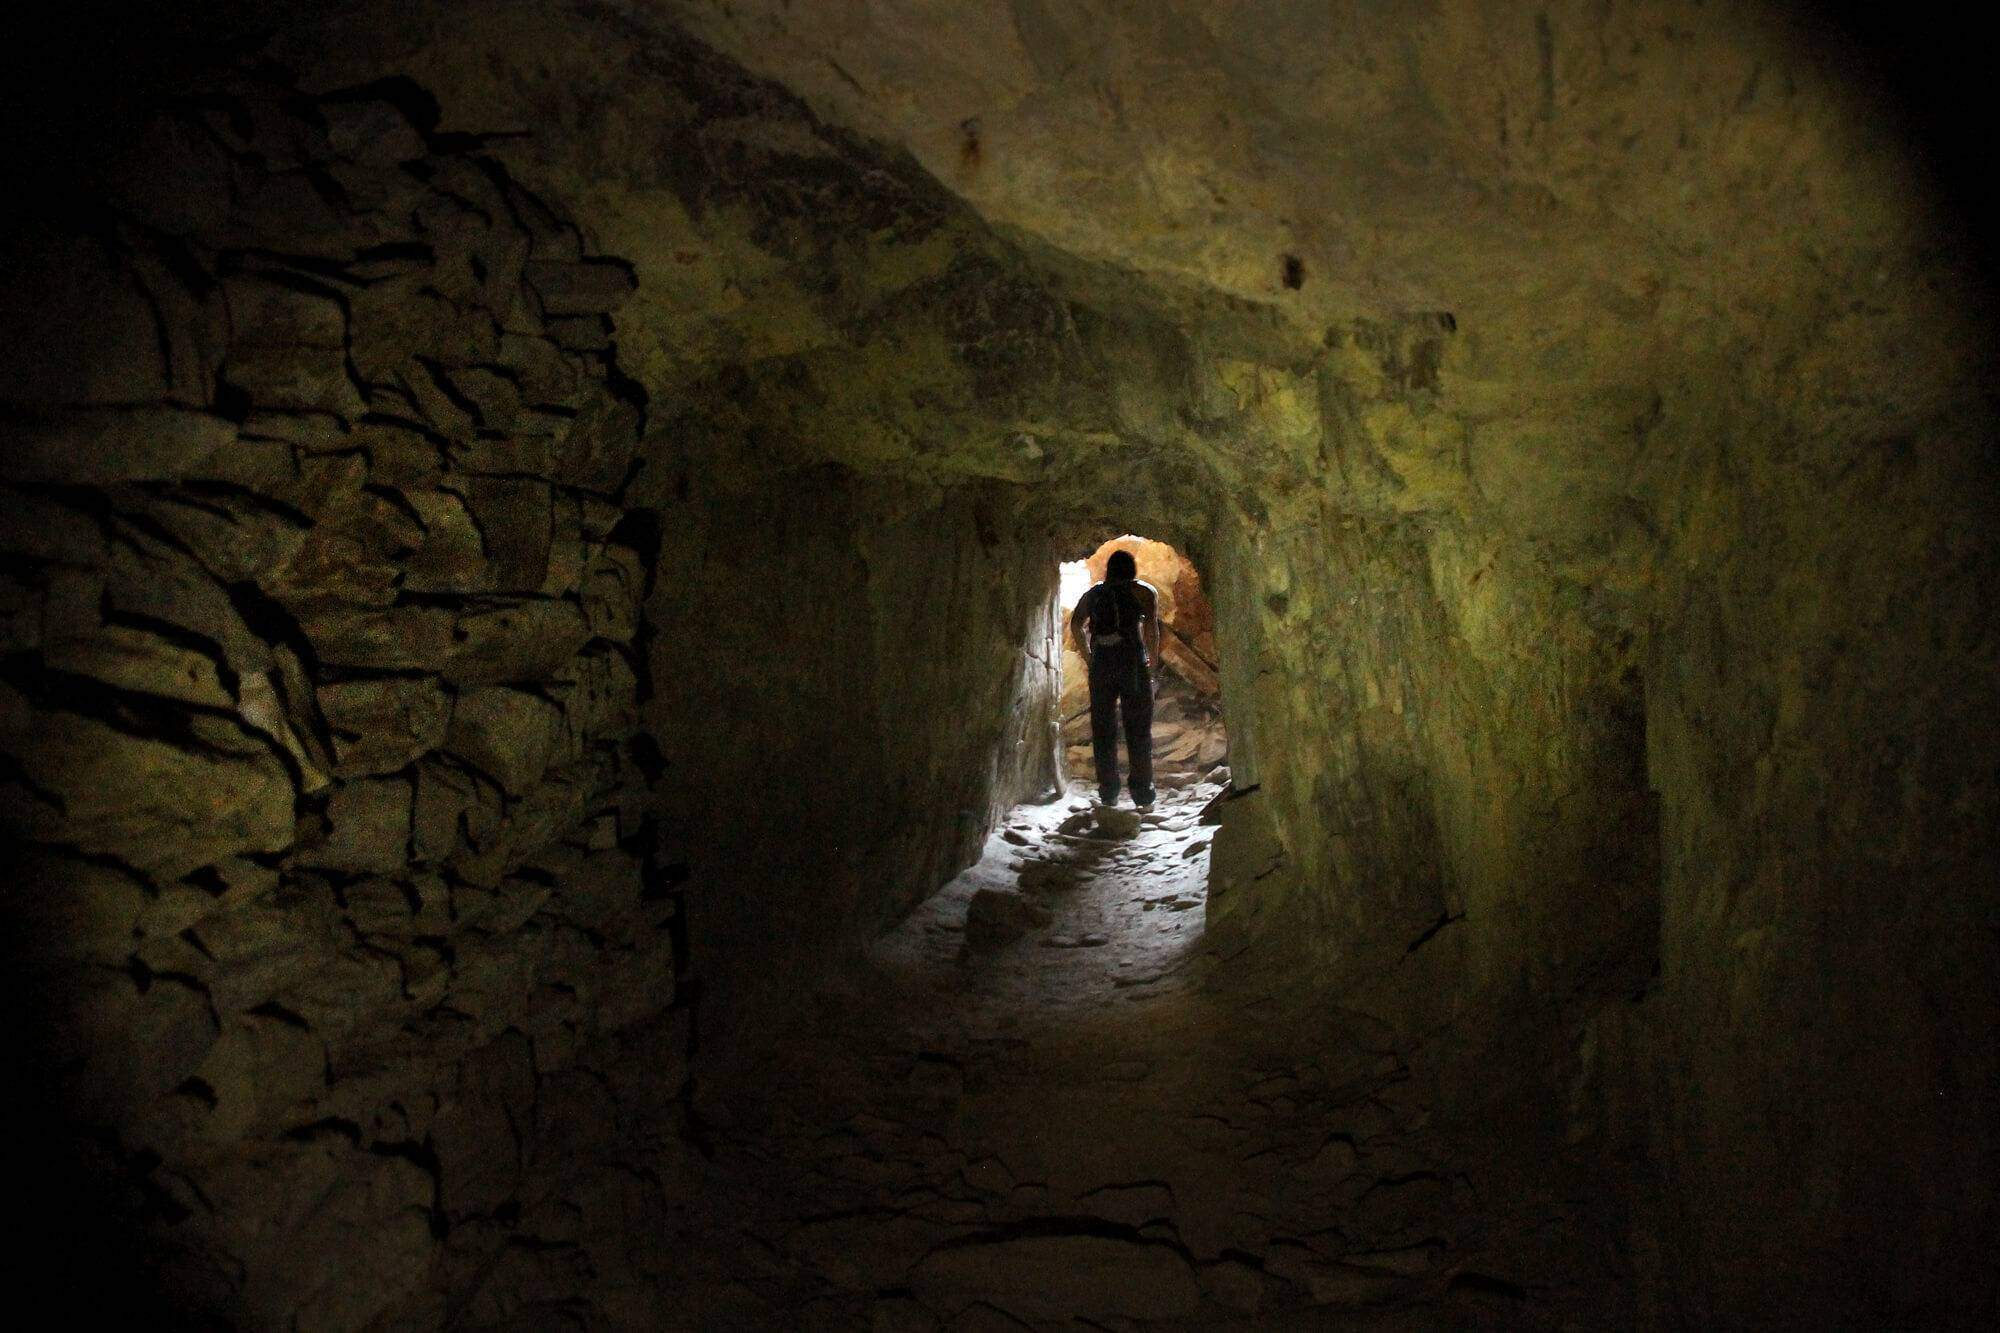 The Ready Relief mine is one of San Diego's most successful mines during the Gold Rush days and comes complete with a murder mystery!